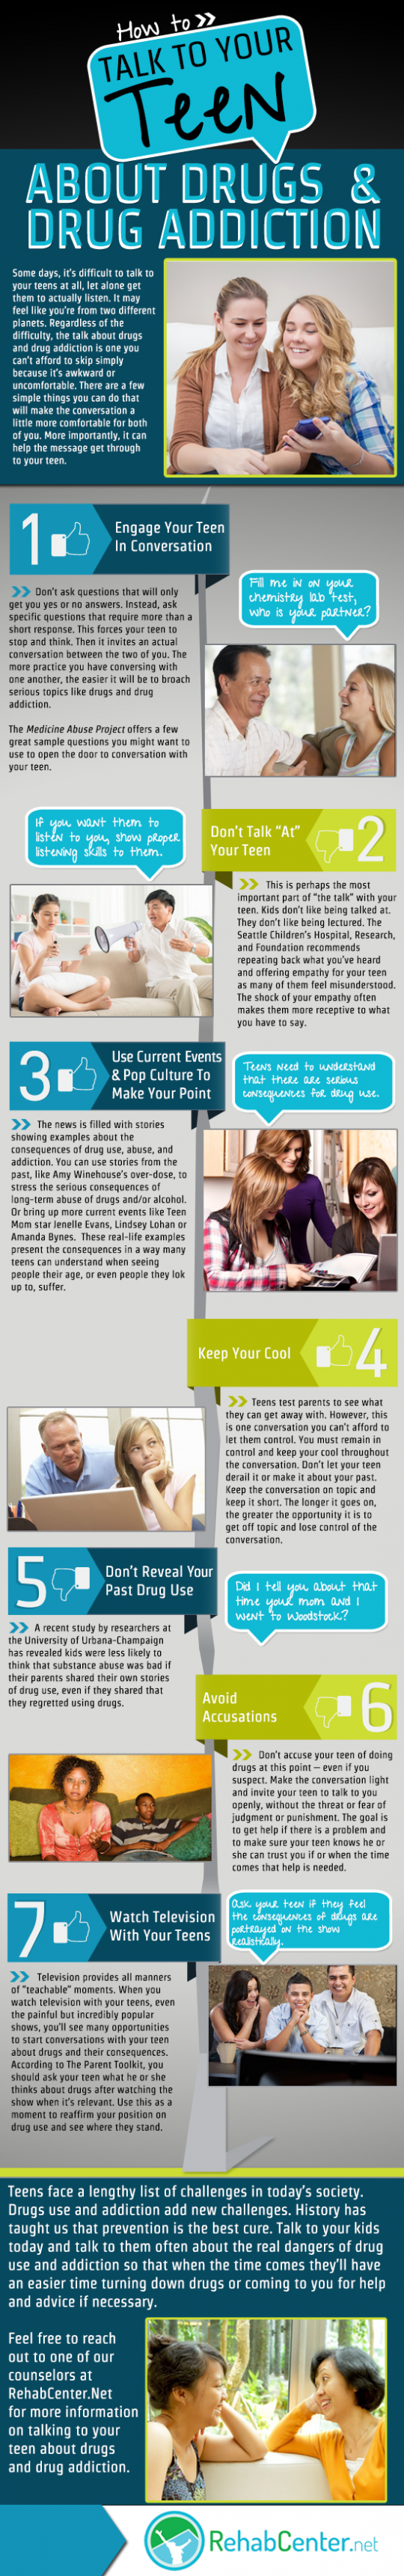 How to Talk to Your Teen About Drugs & Drug Addiction